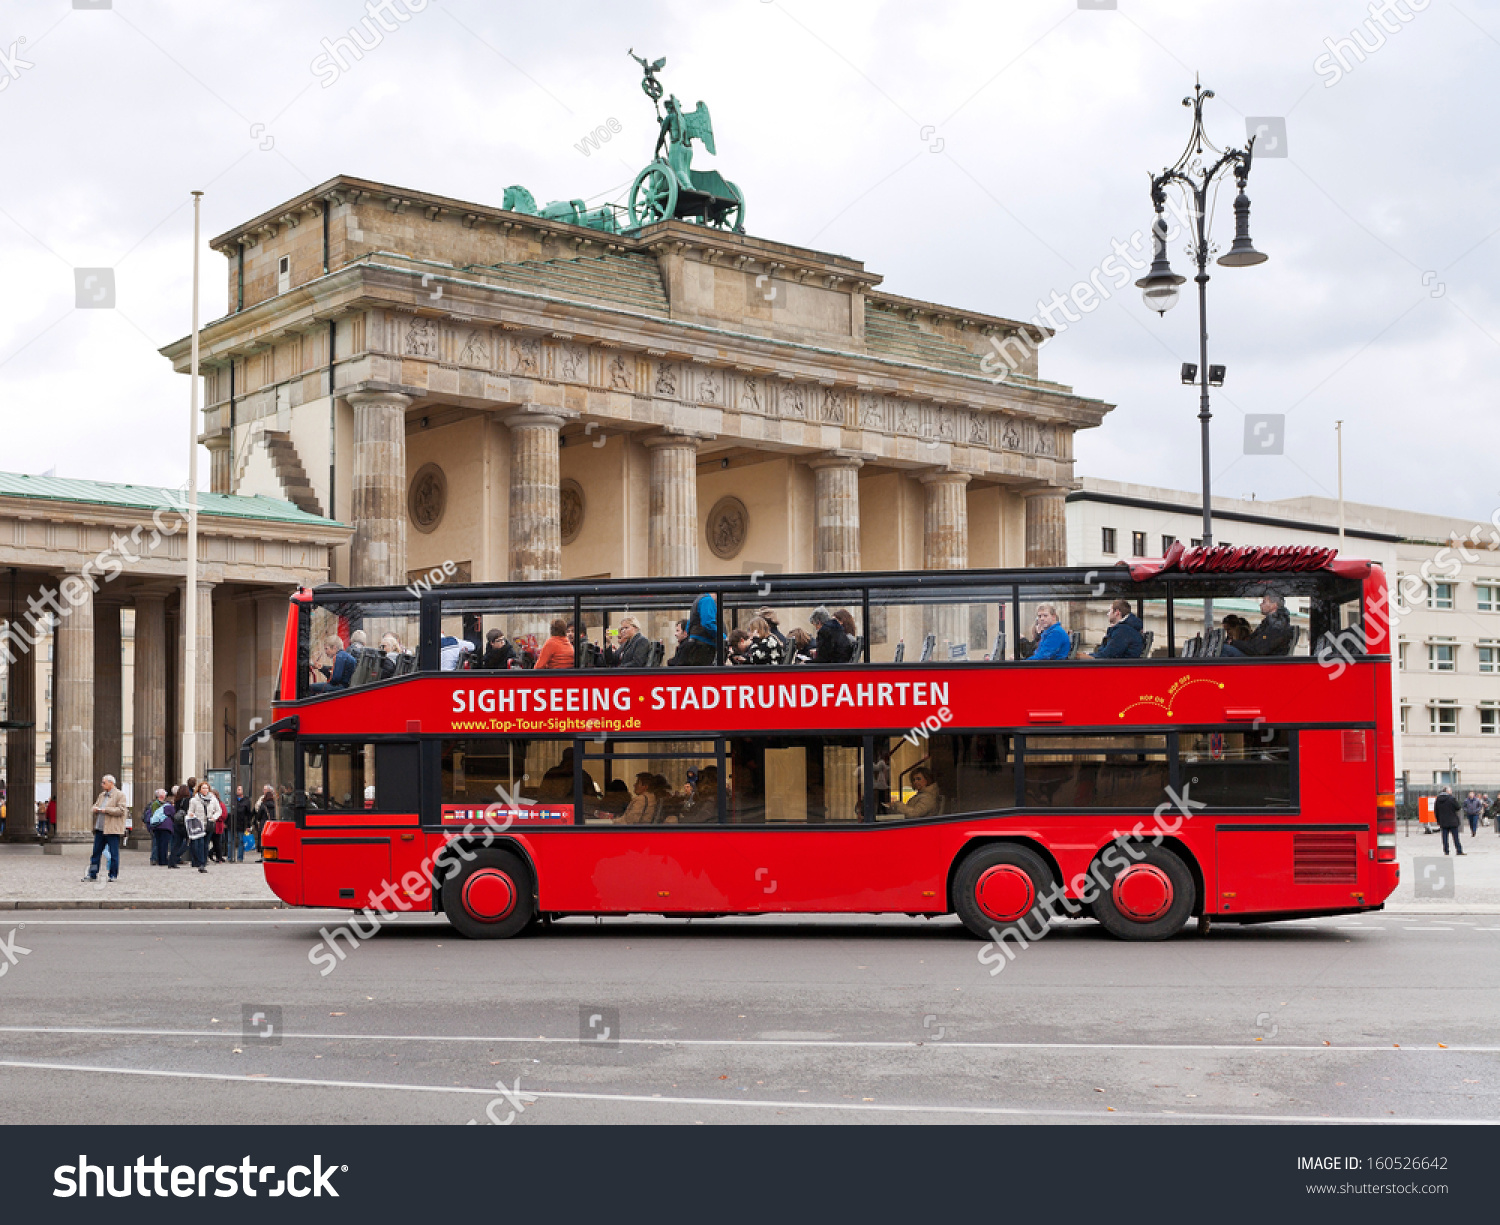 berlin germany october 17 tourist double stock photo 160526642 shutterstock. Black Bedroom Furniture Sets. Home Design Ideas